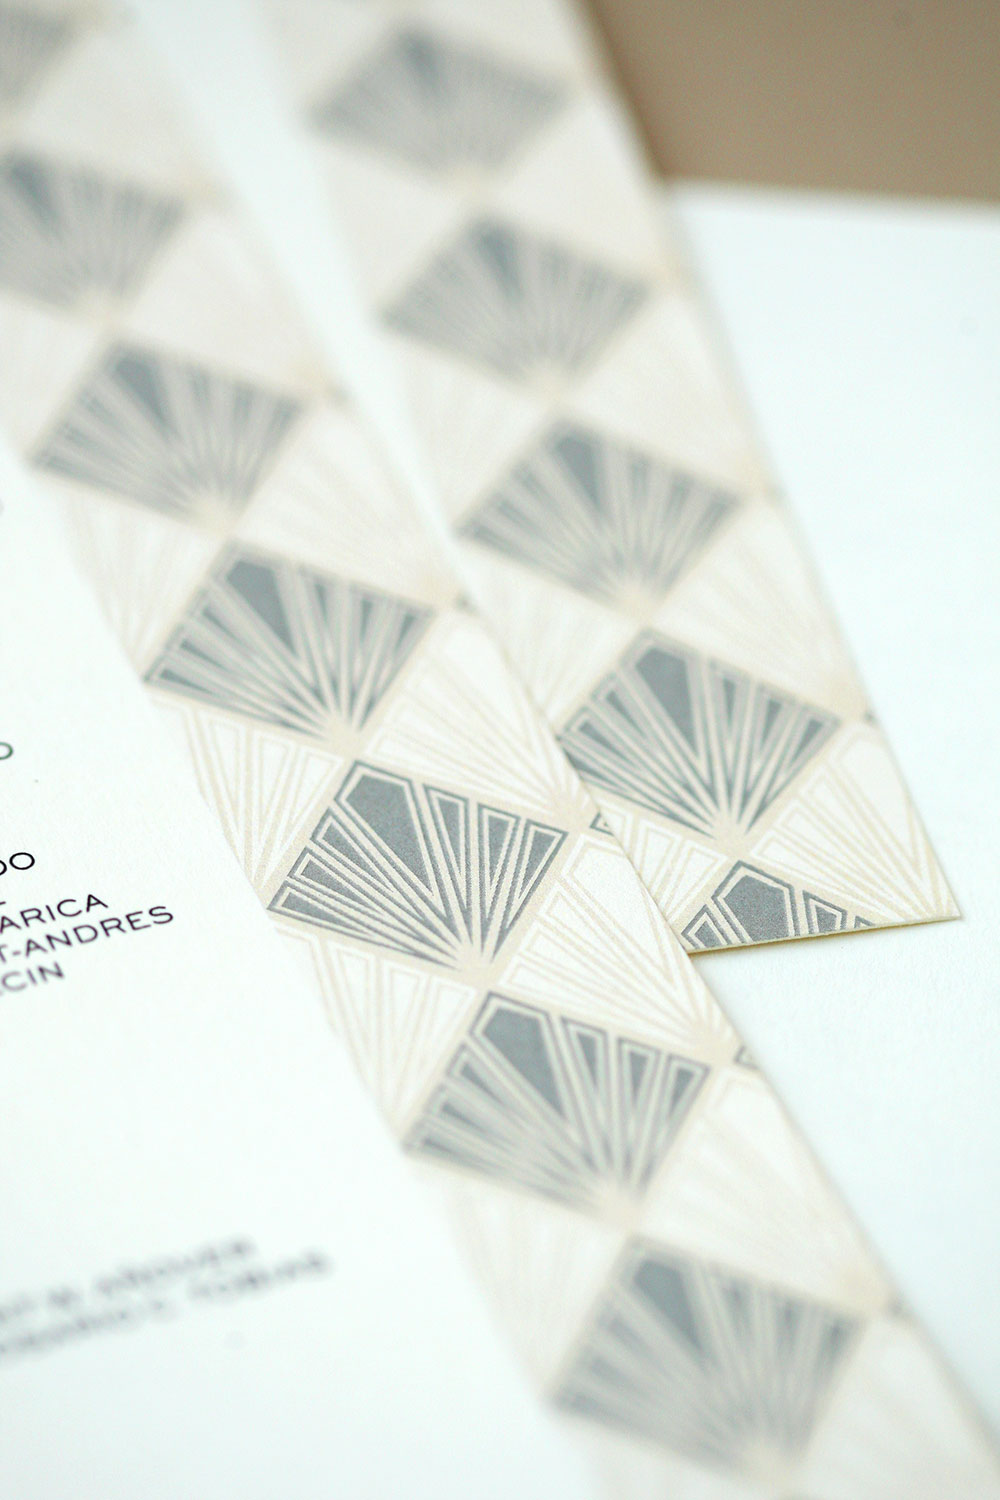 Art Deco Wedding Invitations via Happy Hands Project